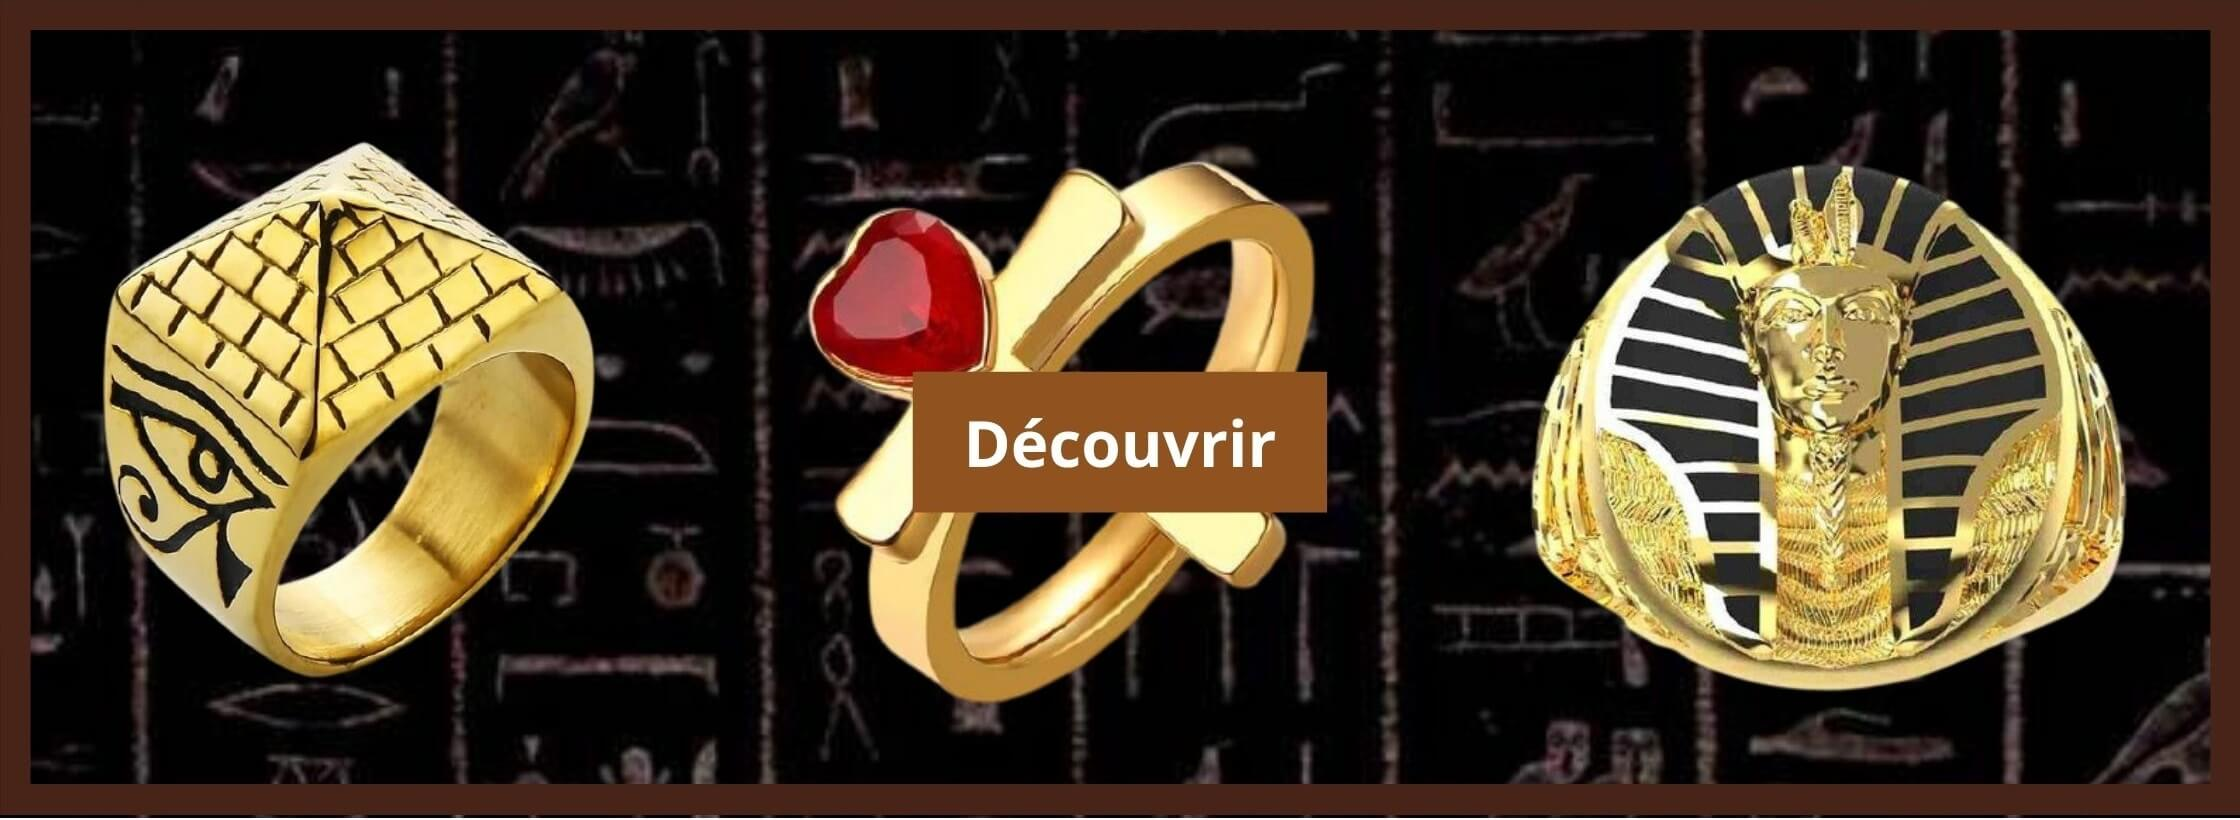 bague egyptien or